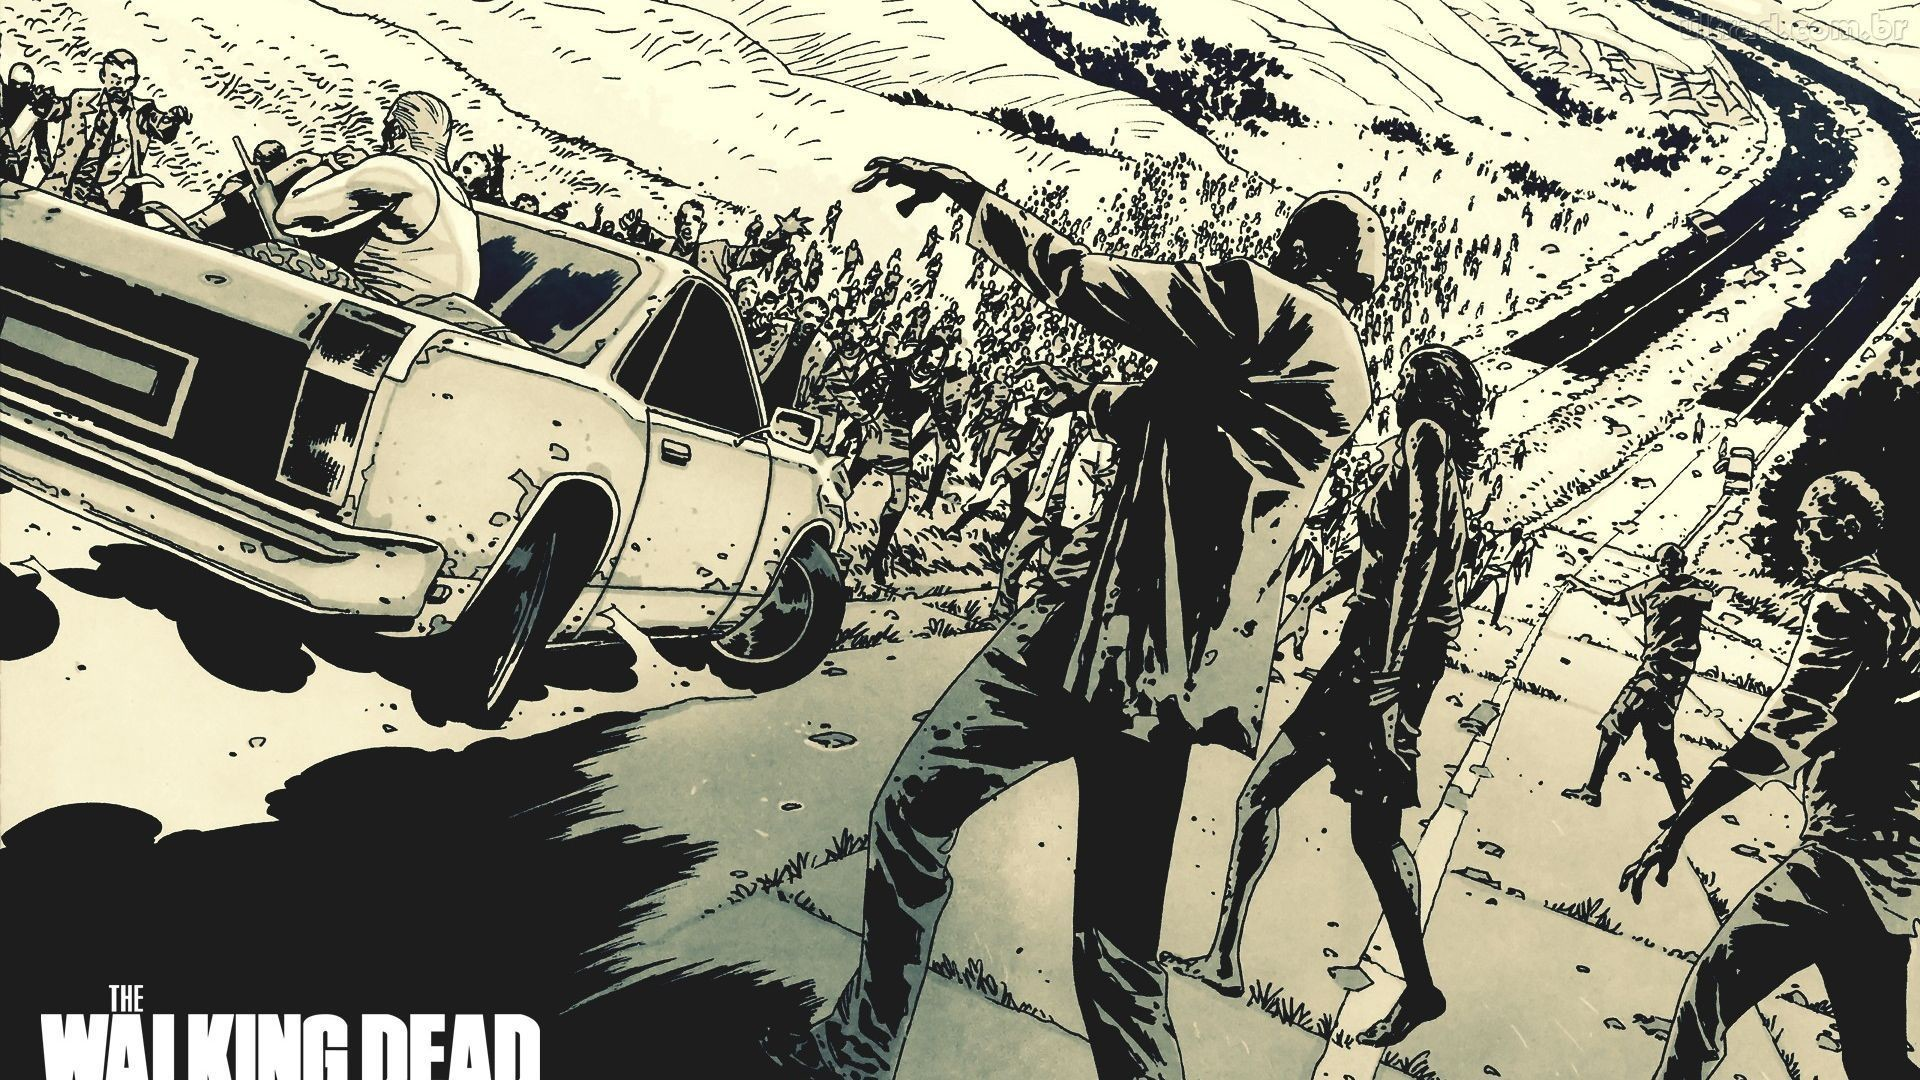 The Walking Dead Wallpapers 1920×1080 (51 Wallpapers) – Adorable Wallpapers